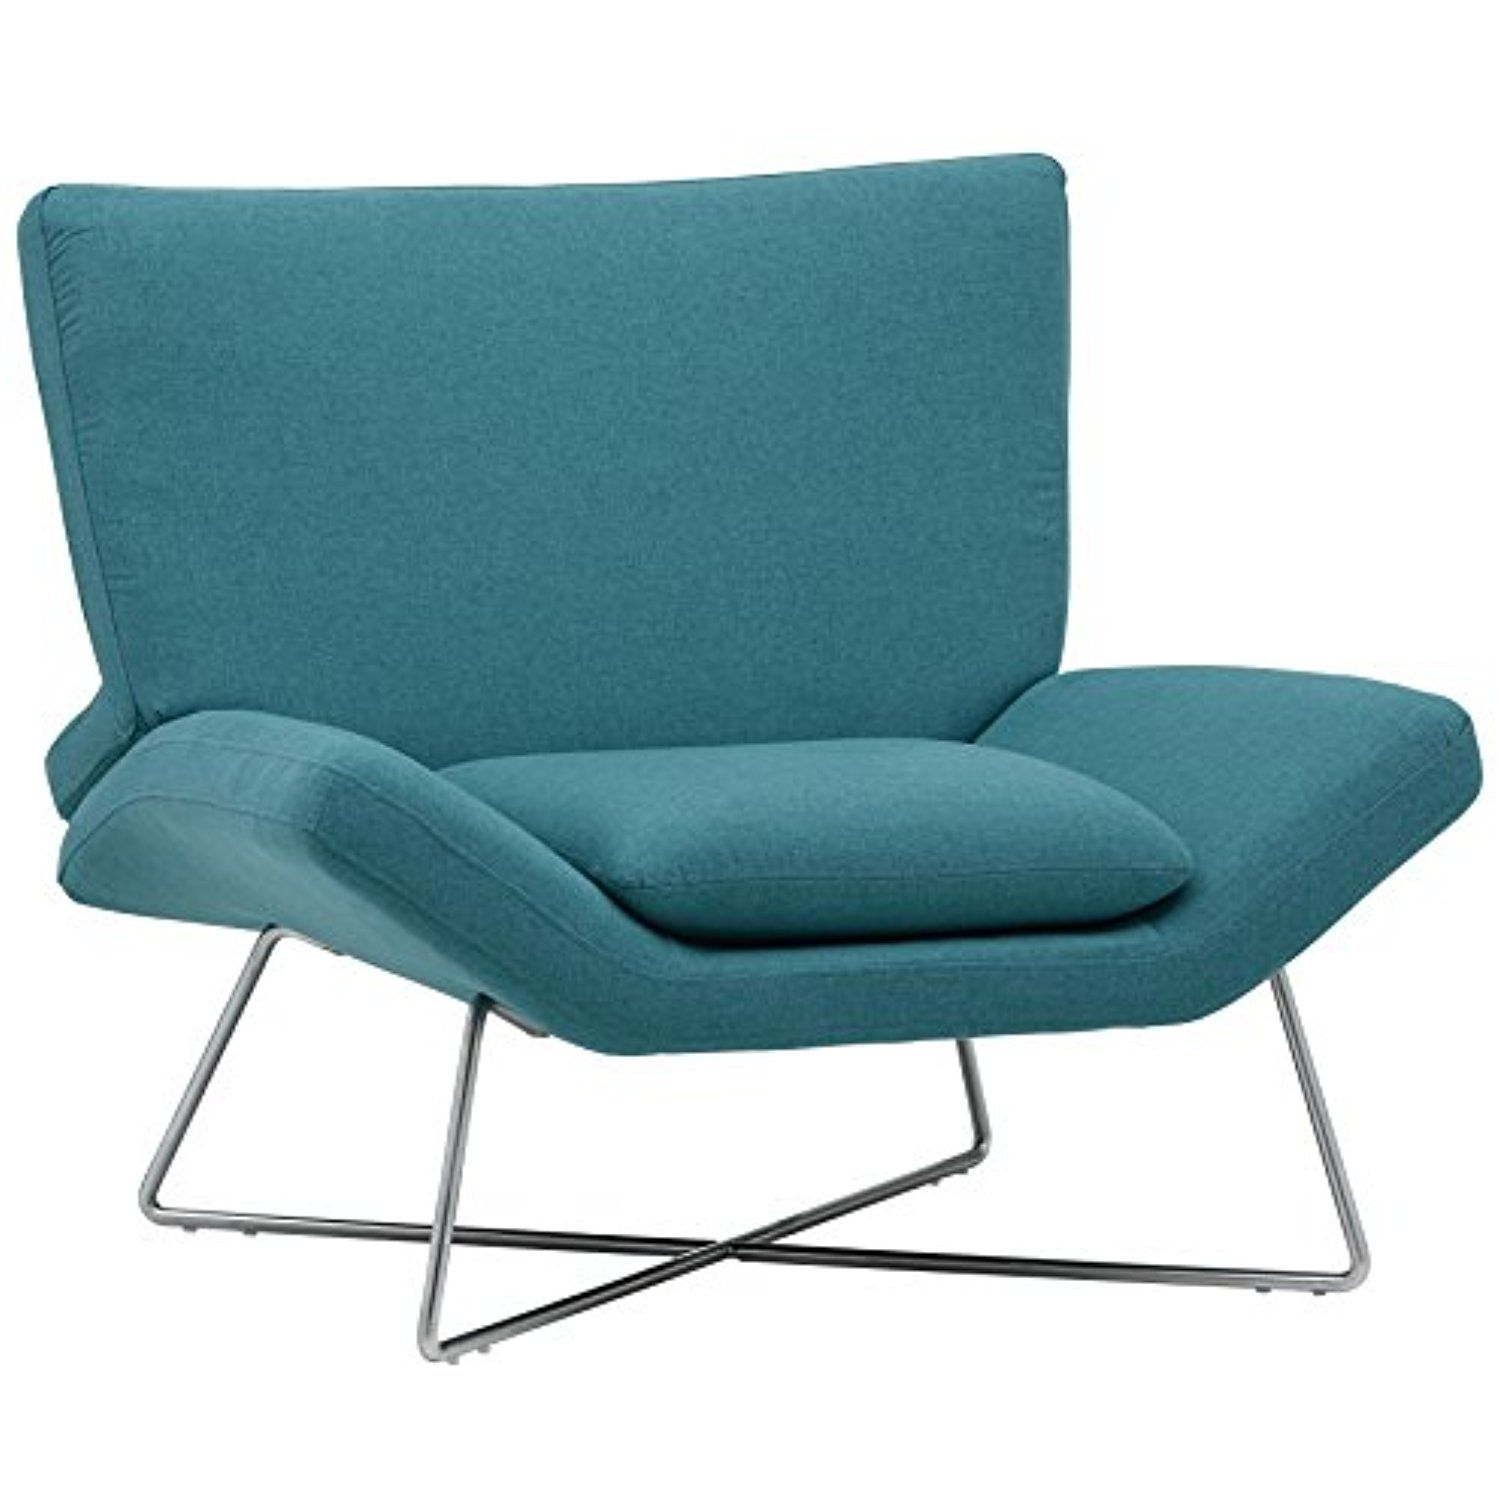 Rivet Farr Lotus Accent Chair Type: Rivet Farr Lotus Accent Chair, Aqua * Want To Know More